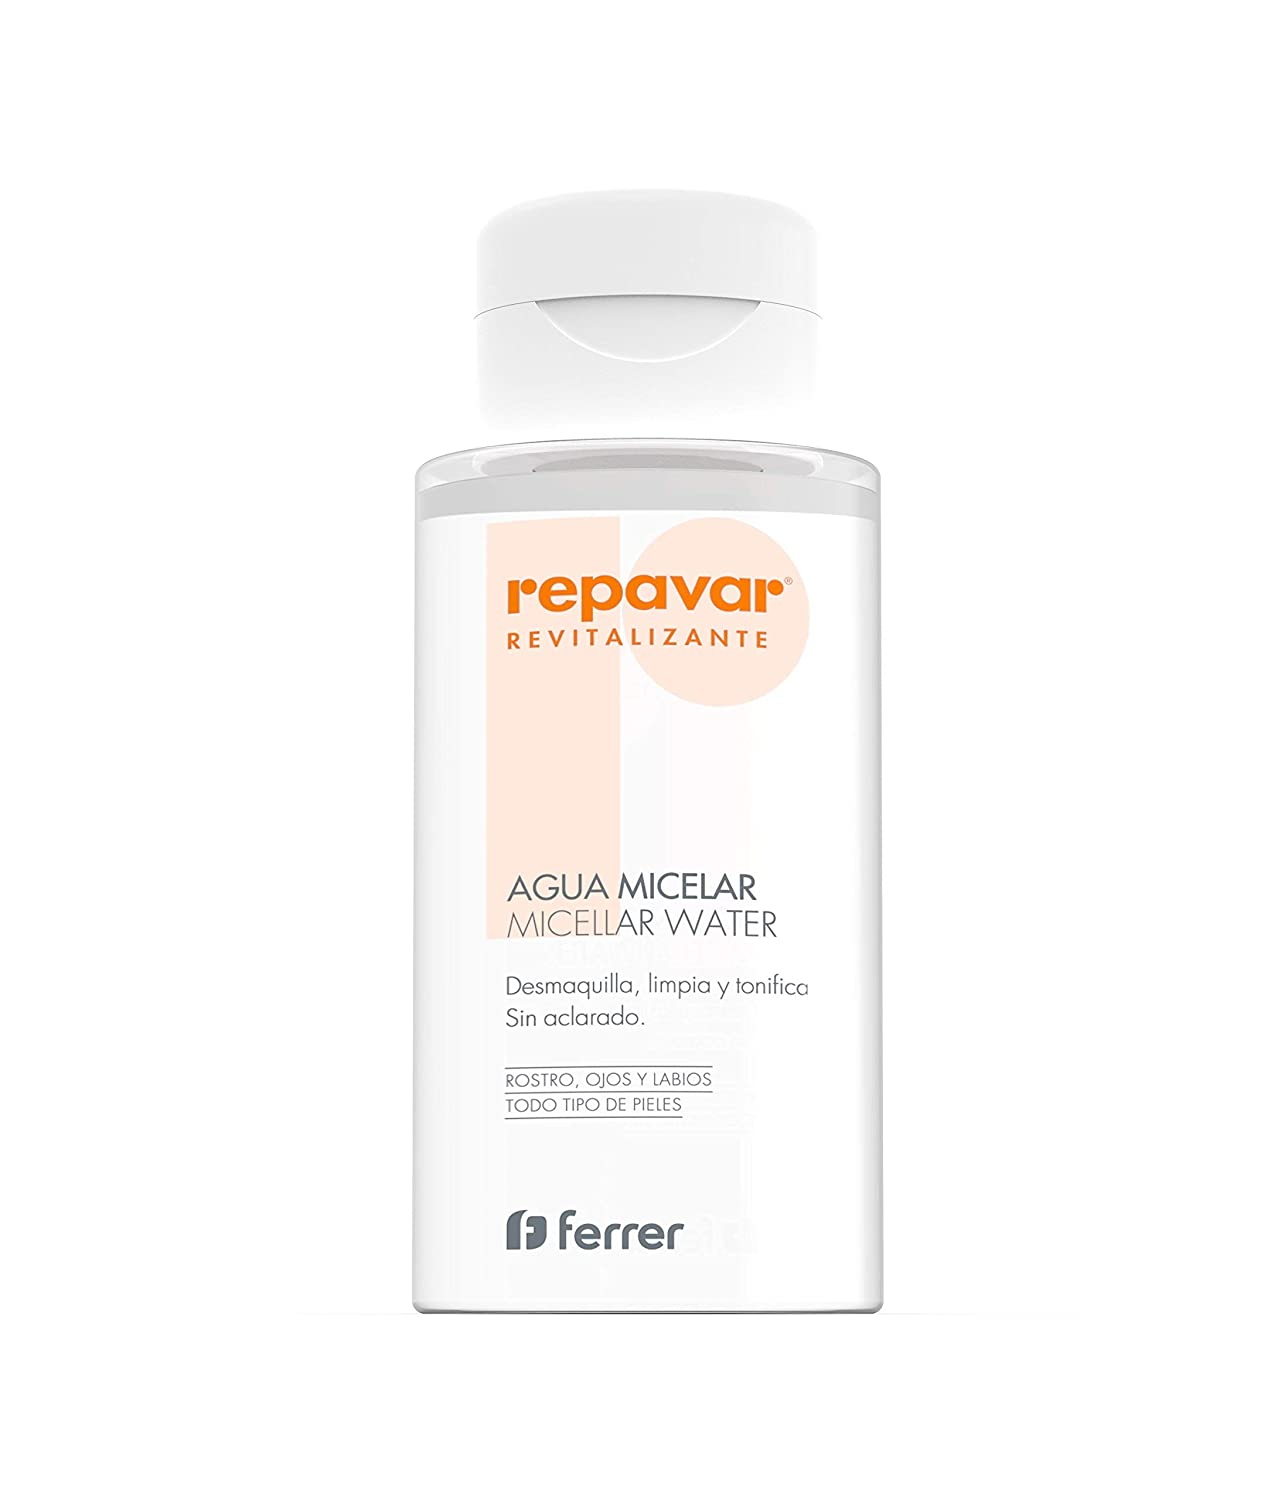 REPAVAR REVITALIZE Micellar Water 300ml - Cleanses, Tones And Removes Impurities, For Face, Eyes and Lips Ferrer 1308384